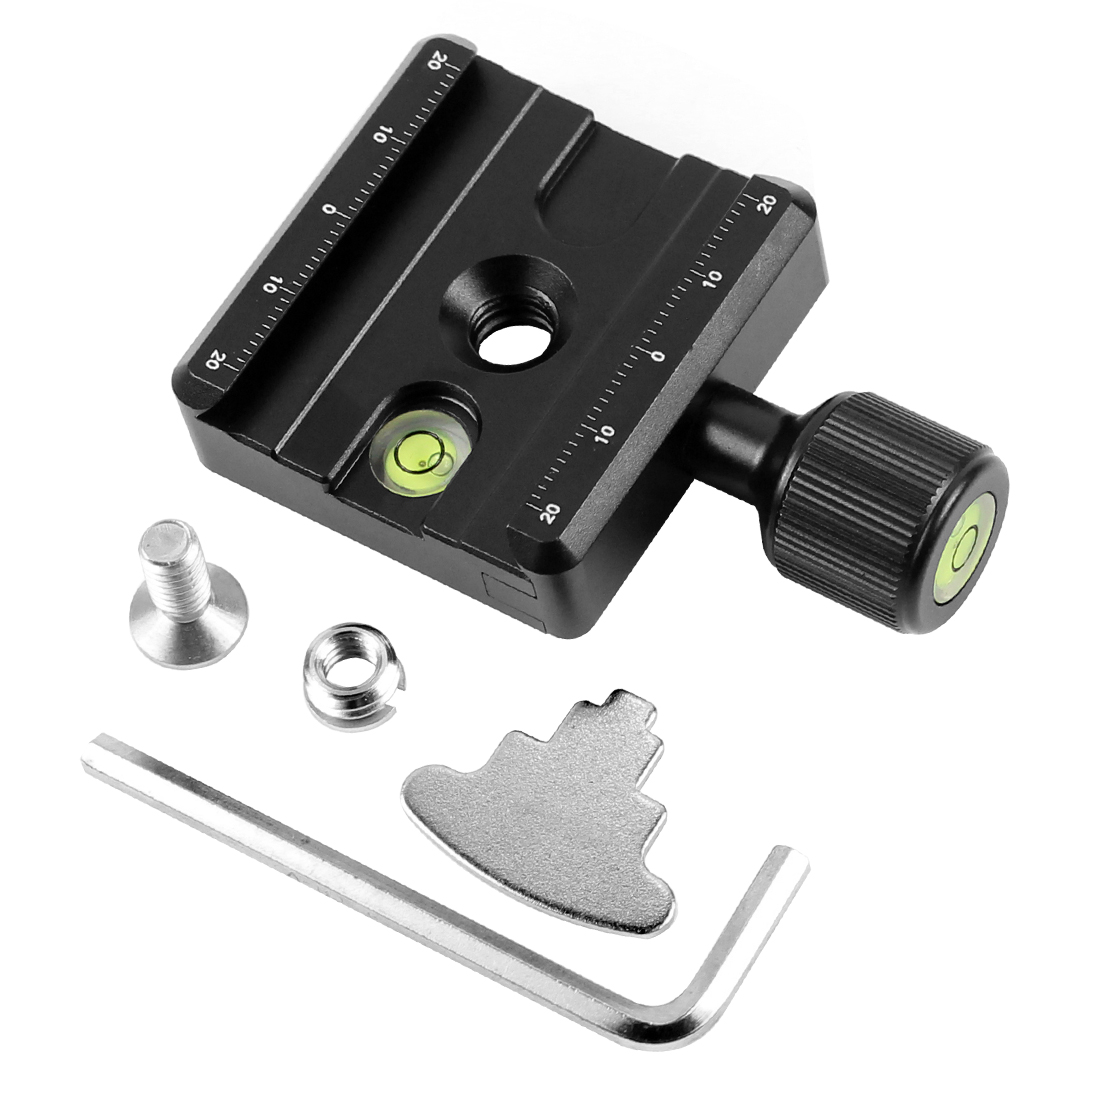 XILETU QR-50 Adapter Plate Square Clamp with Gradienter for Quick Release Plate for Tripod Ball Head  Q19819XILETU QR-50 Adapter Plate Square Clamp with Gradienter for Quick Release Plate for Tripod Ball Head  Q19819